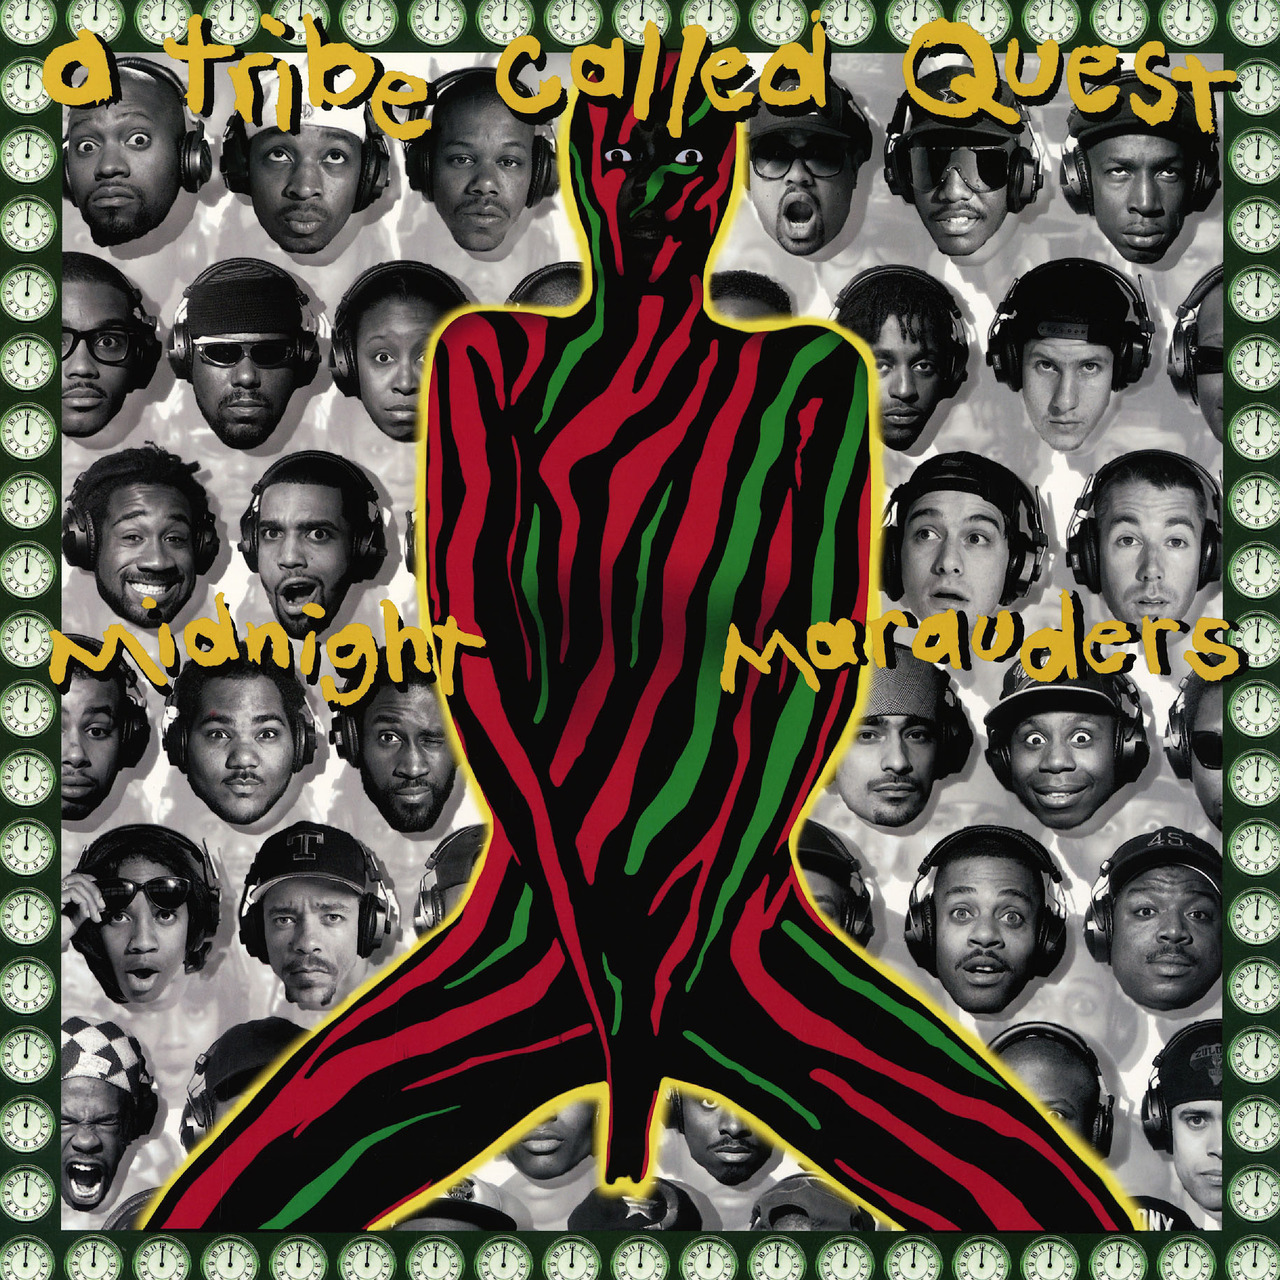 Today in Hip-Hop History: A Tribe Called Quest Dropped Their 'Midnight Marauders' LP 27 Years Ago